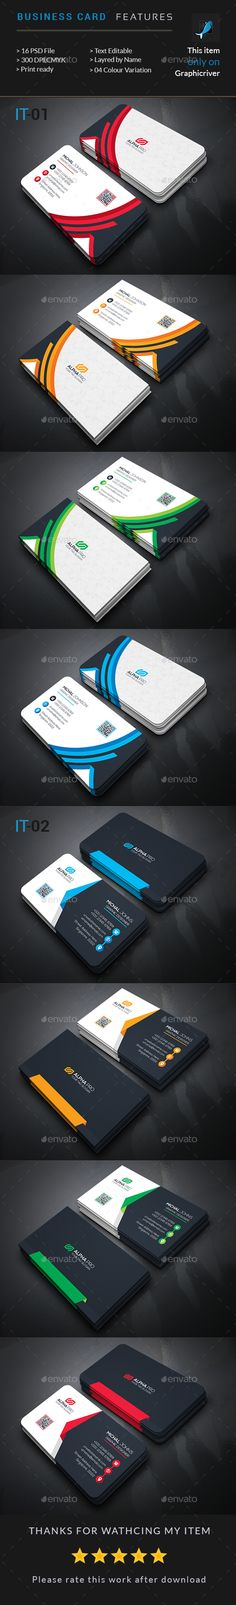 Corporate Business Card Bundle In - Business Cards Print Templates Vintage Business Cards, Simple Business Cards, Custom Business Cards, Professional Business Cards, Business Card Maker, Artist Business Cards, Business Card Design, Name Card Design, Bussiness Card